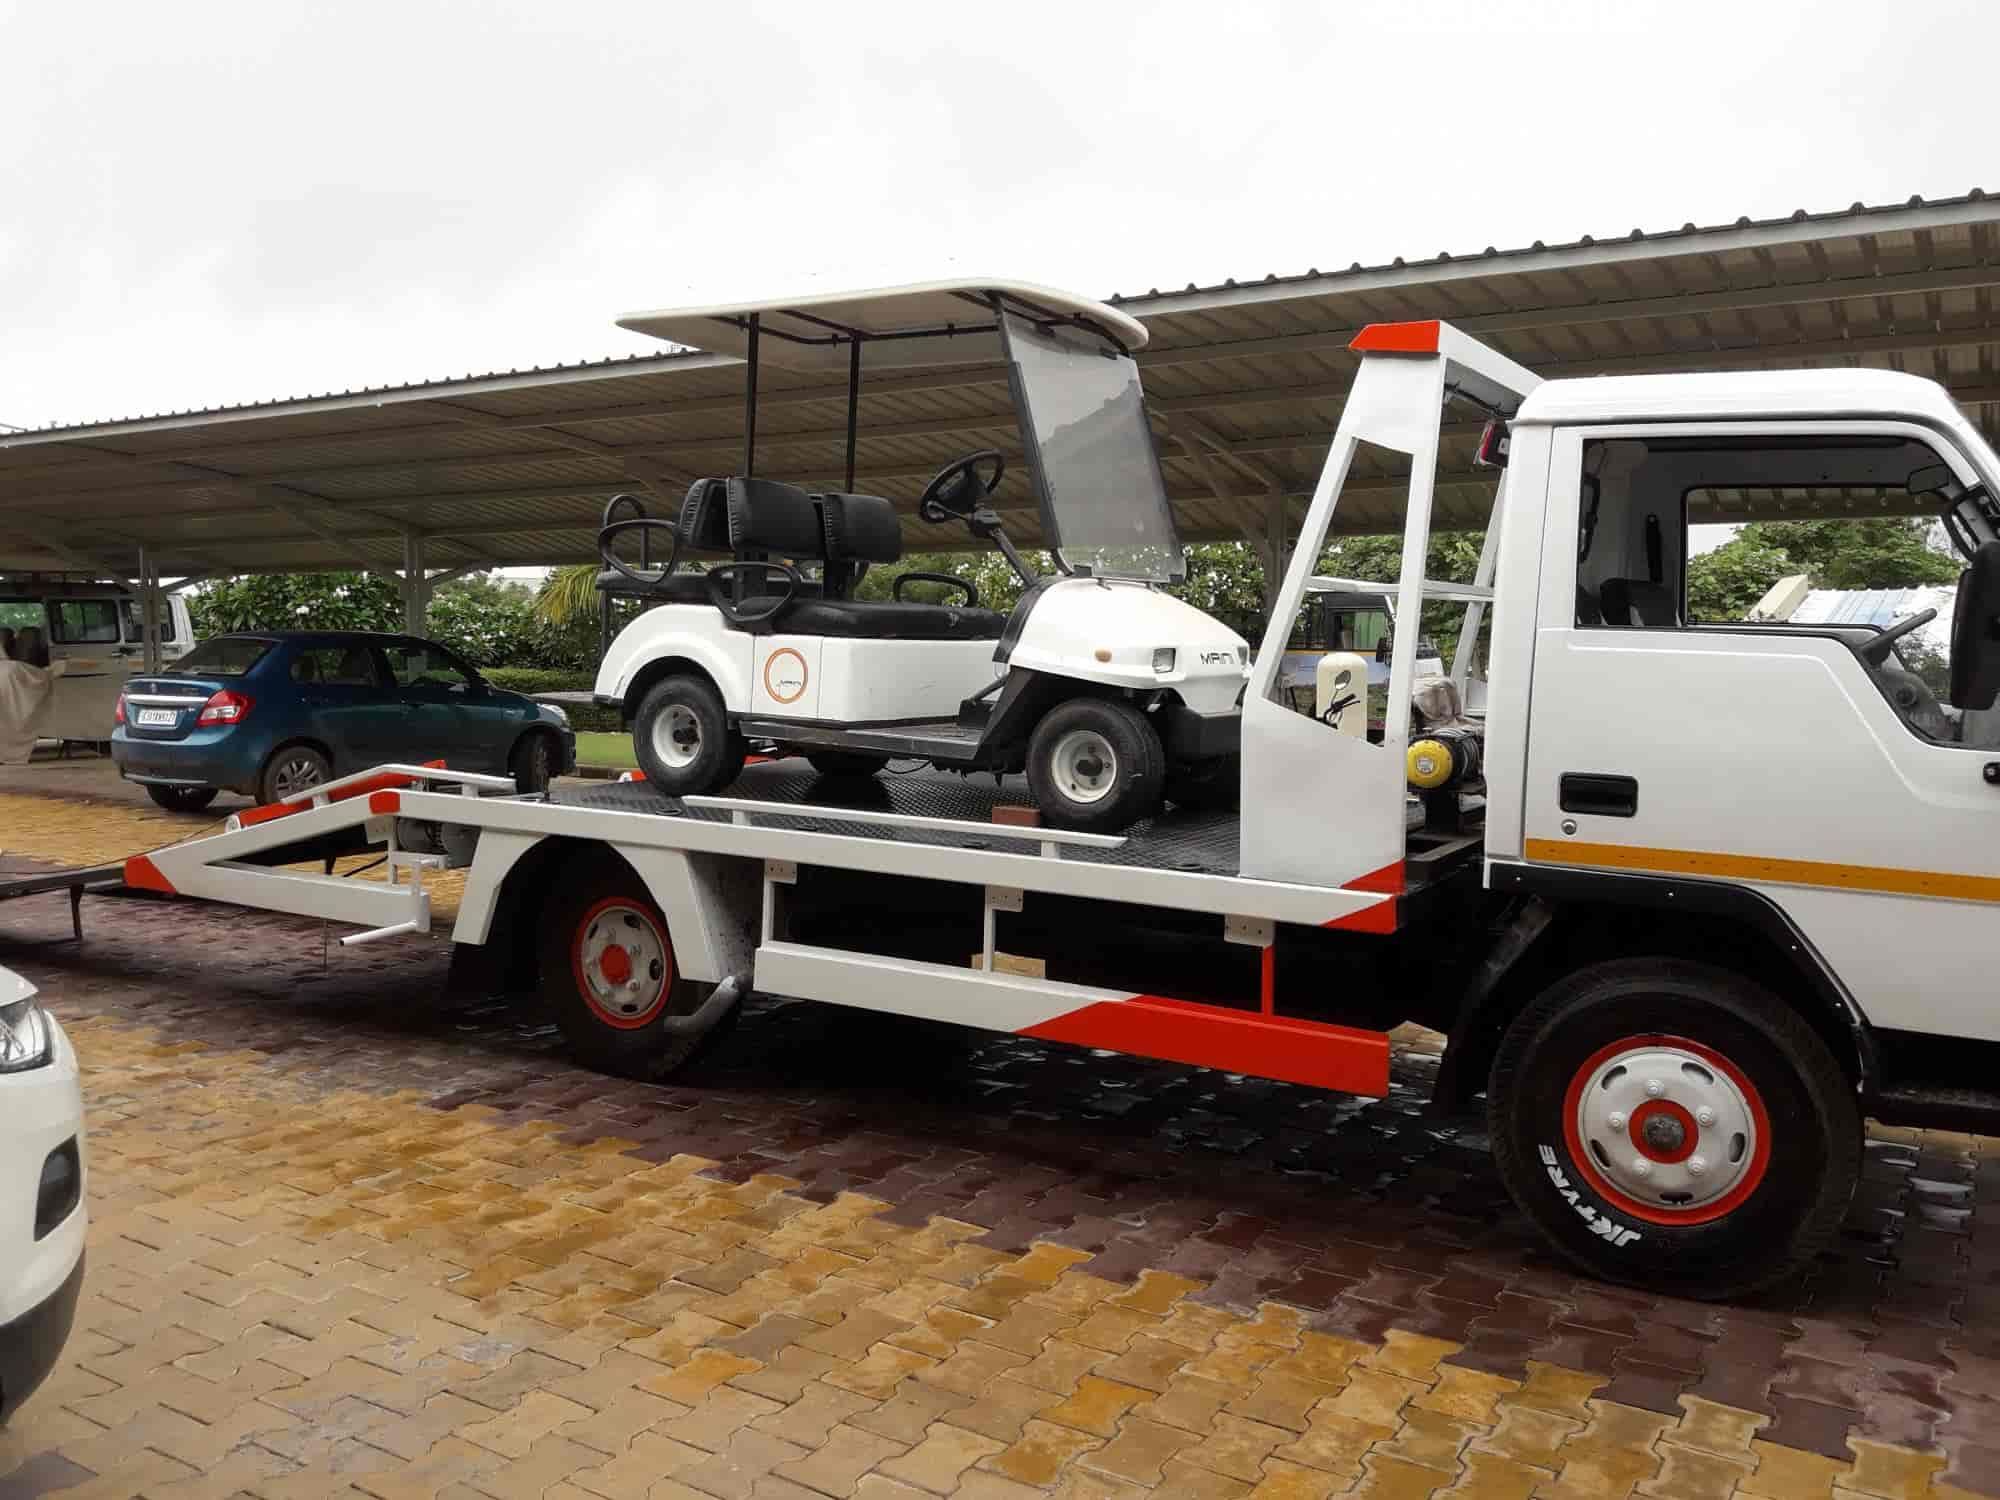 Top 50 Car Towing Services in Ahmedabad - Roadside Assistance for Car - Justdial